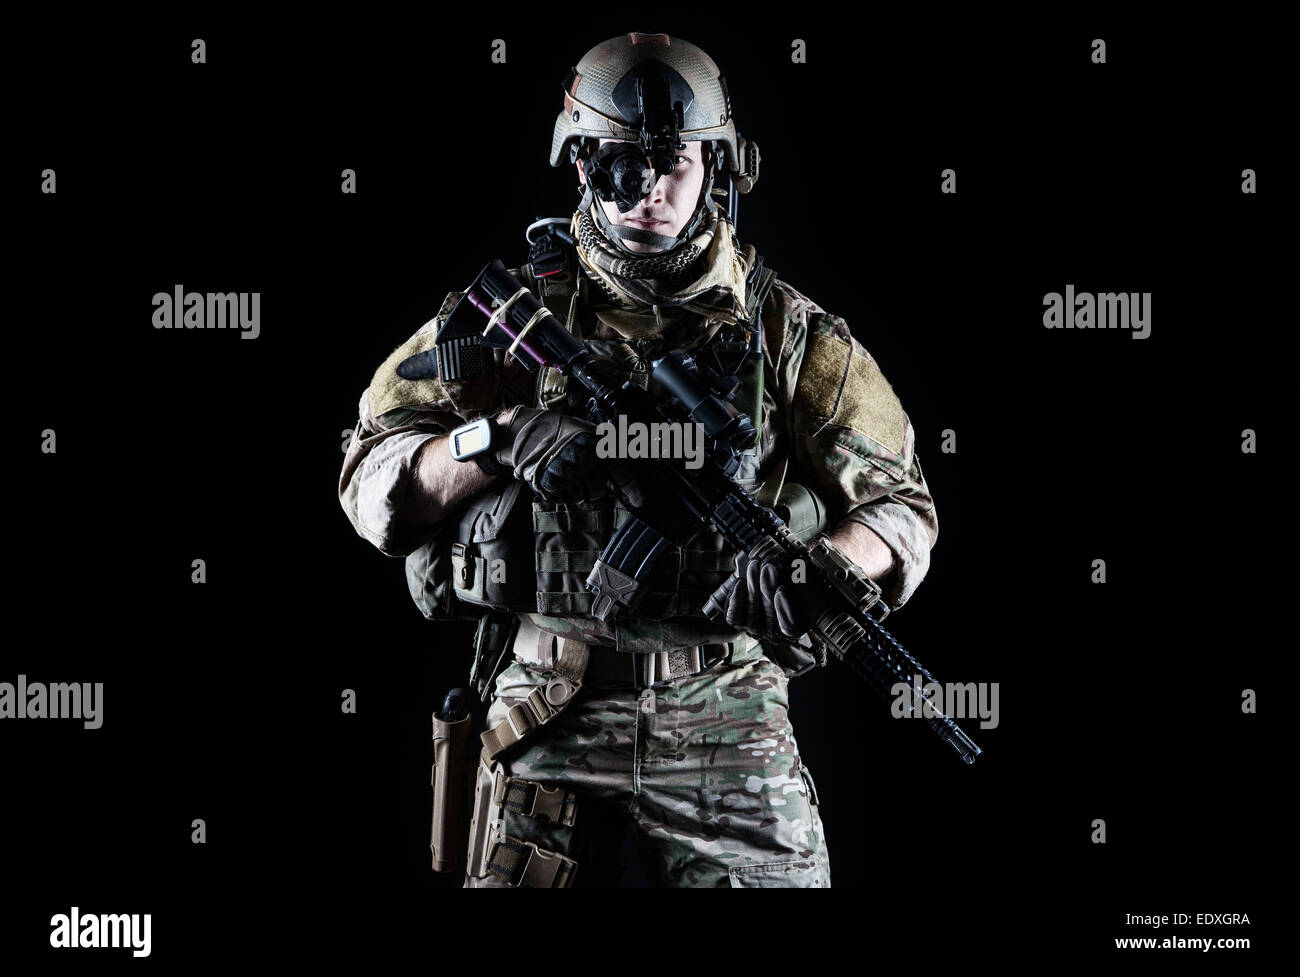 United States Army ranger - Stock Image